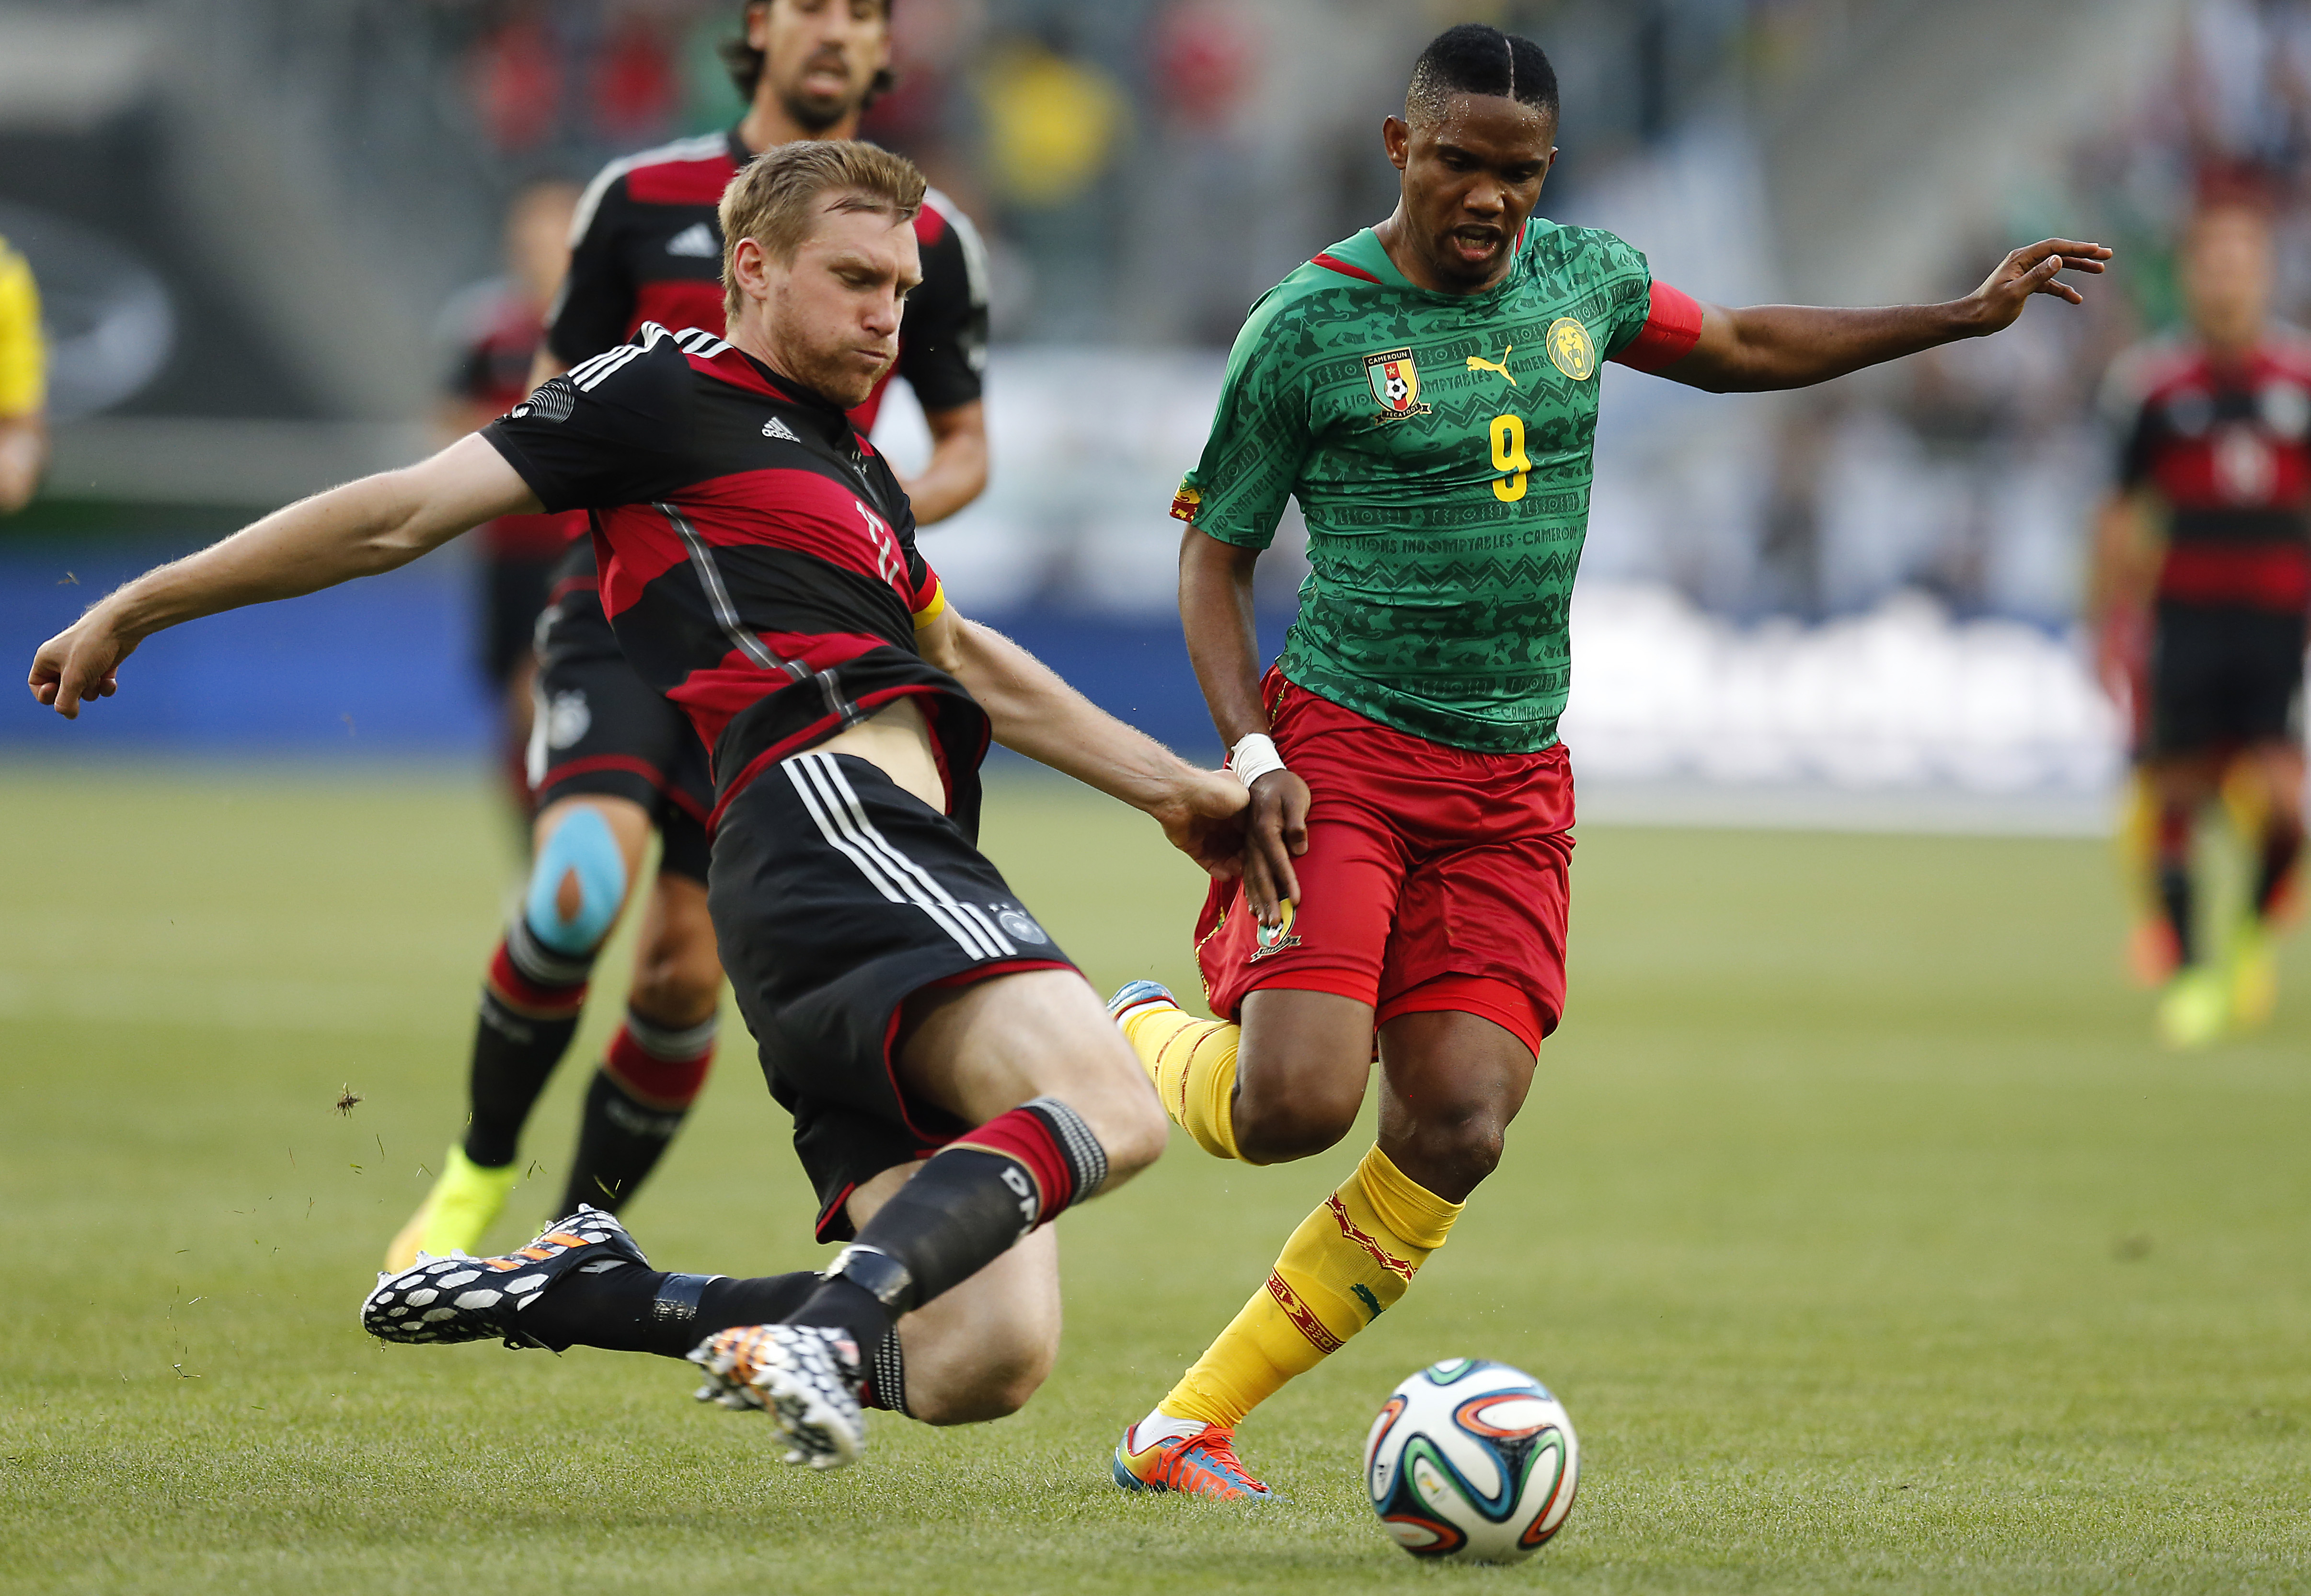 Cameroon s Young Lion Olinga Achieving World Cup Dreams Sonny